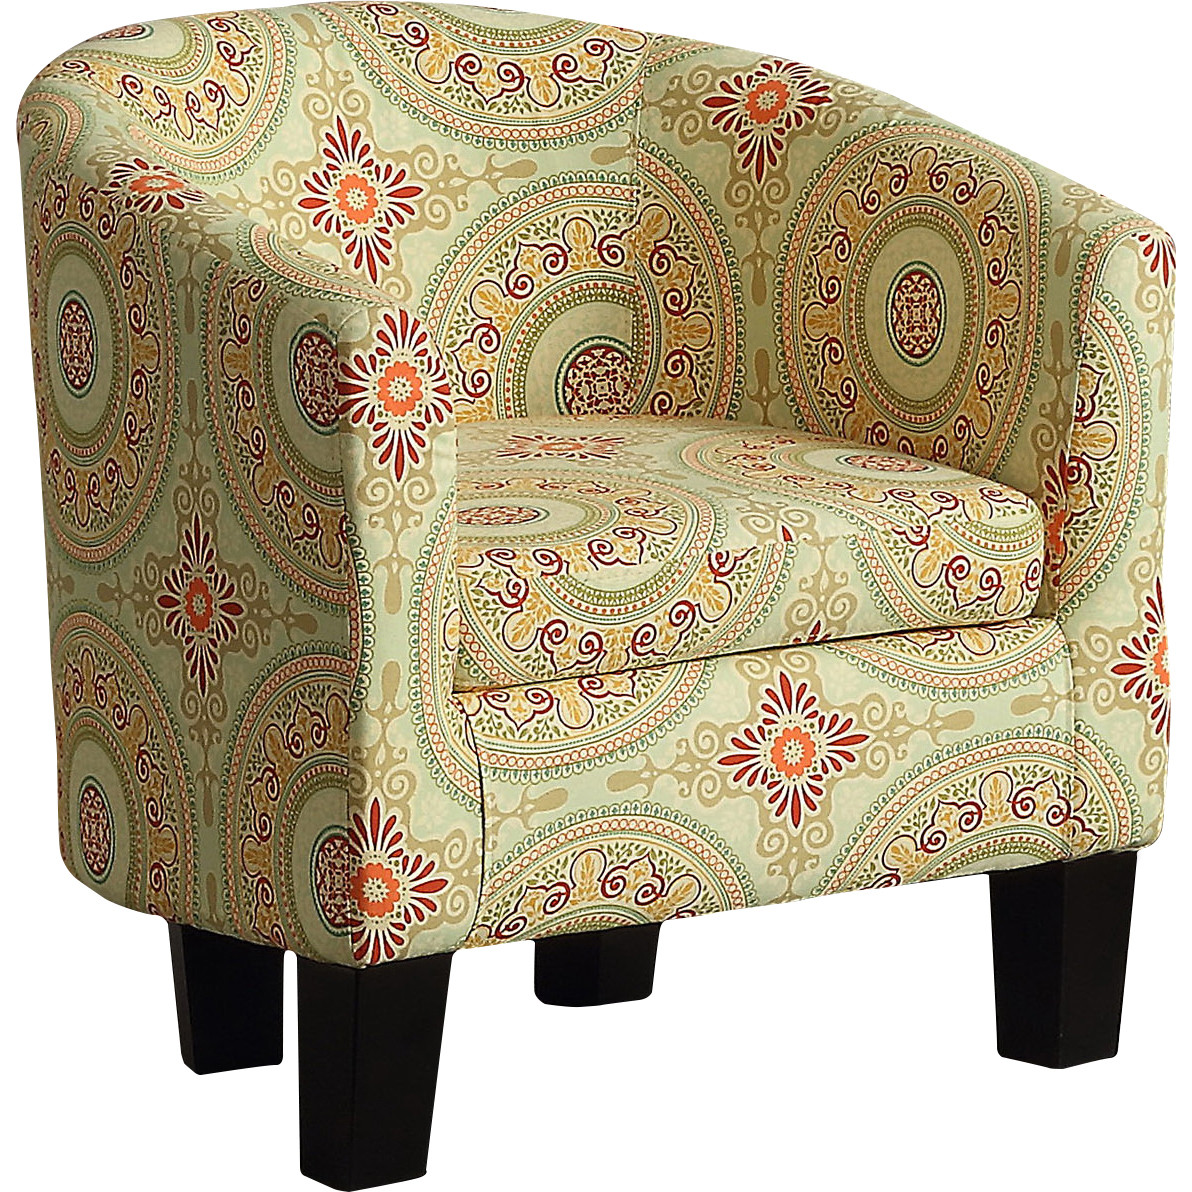 Alton Furniture Fiora Floral Medallion Barrel Chair, Contemporary Accent Chair, More Pattern Option by Fully Wind Co, Ltd.